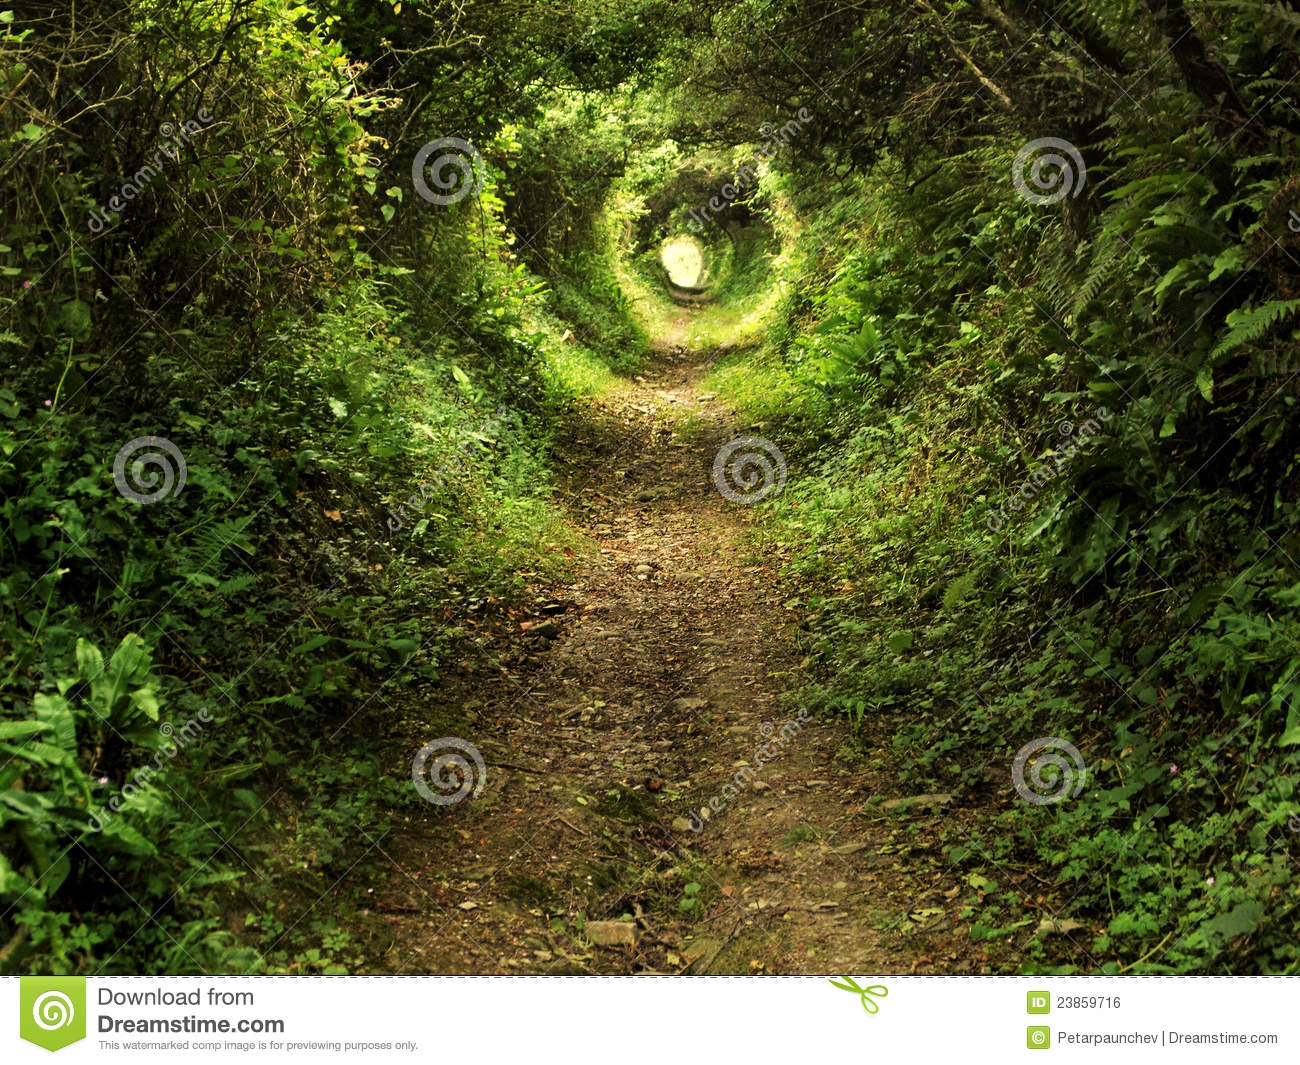 Enchanted tunnel path in the forest